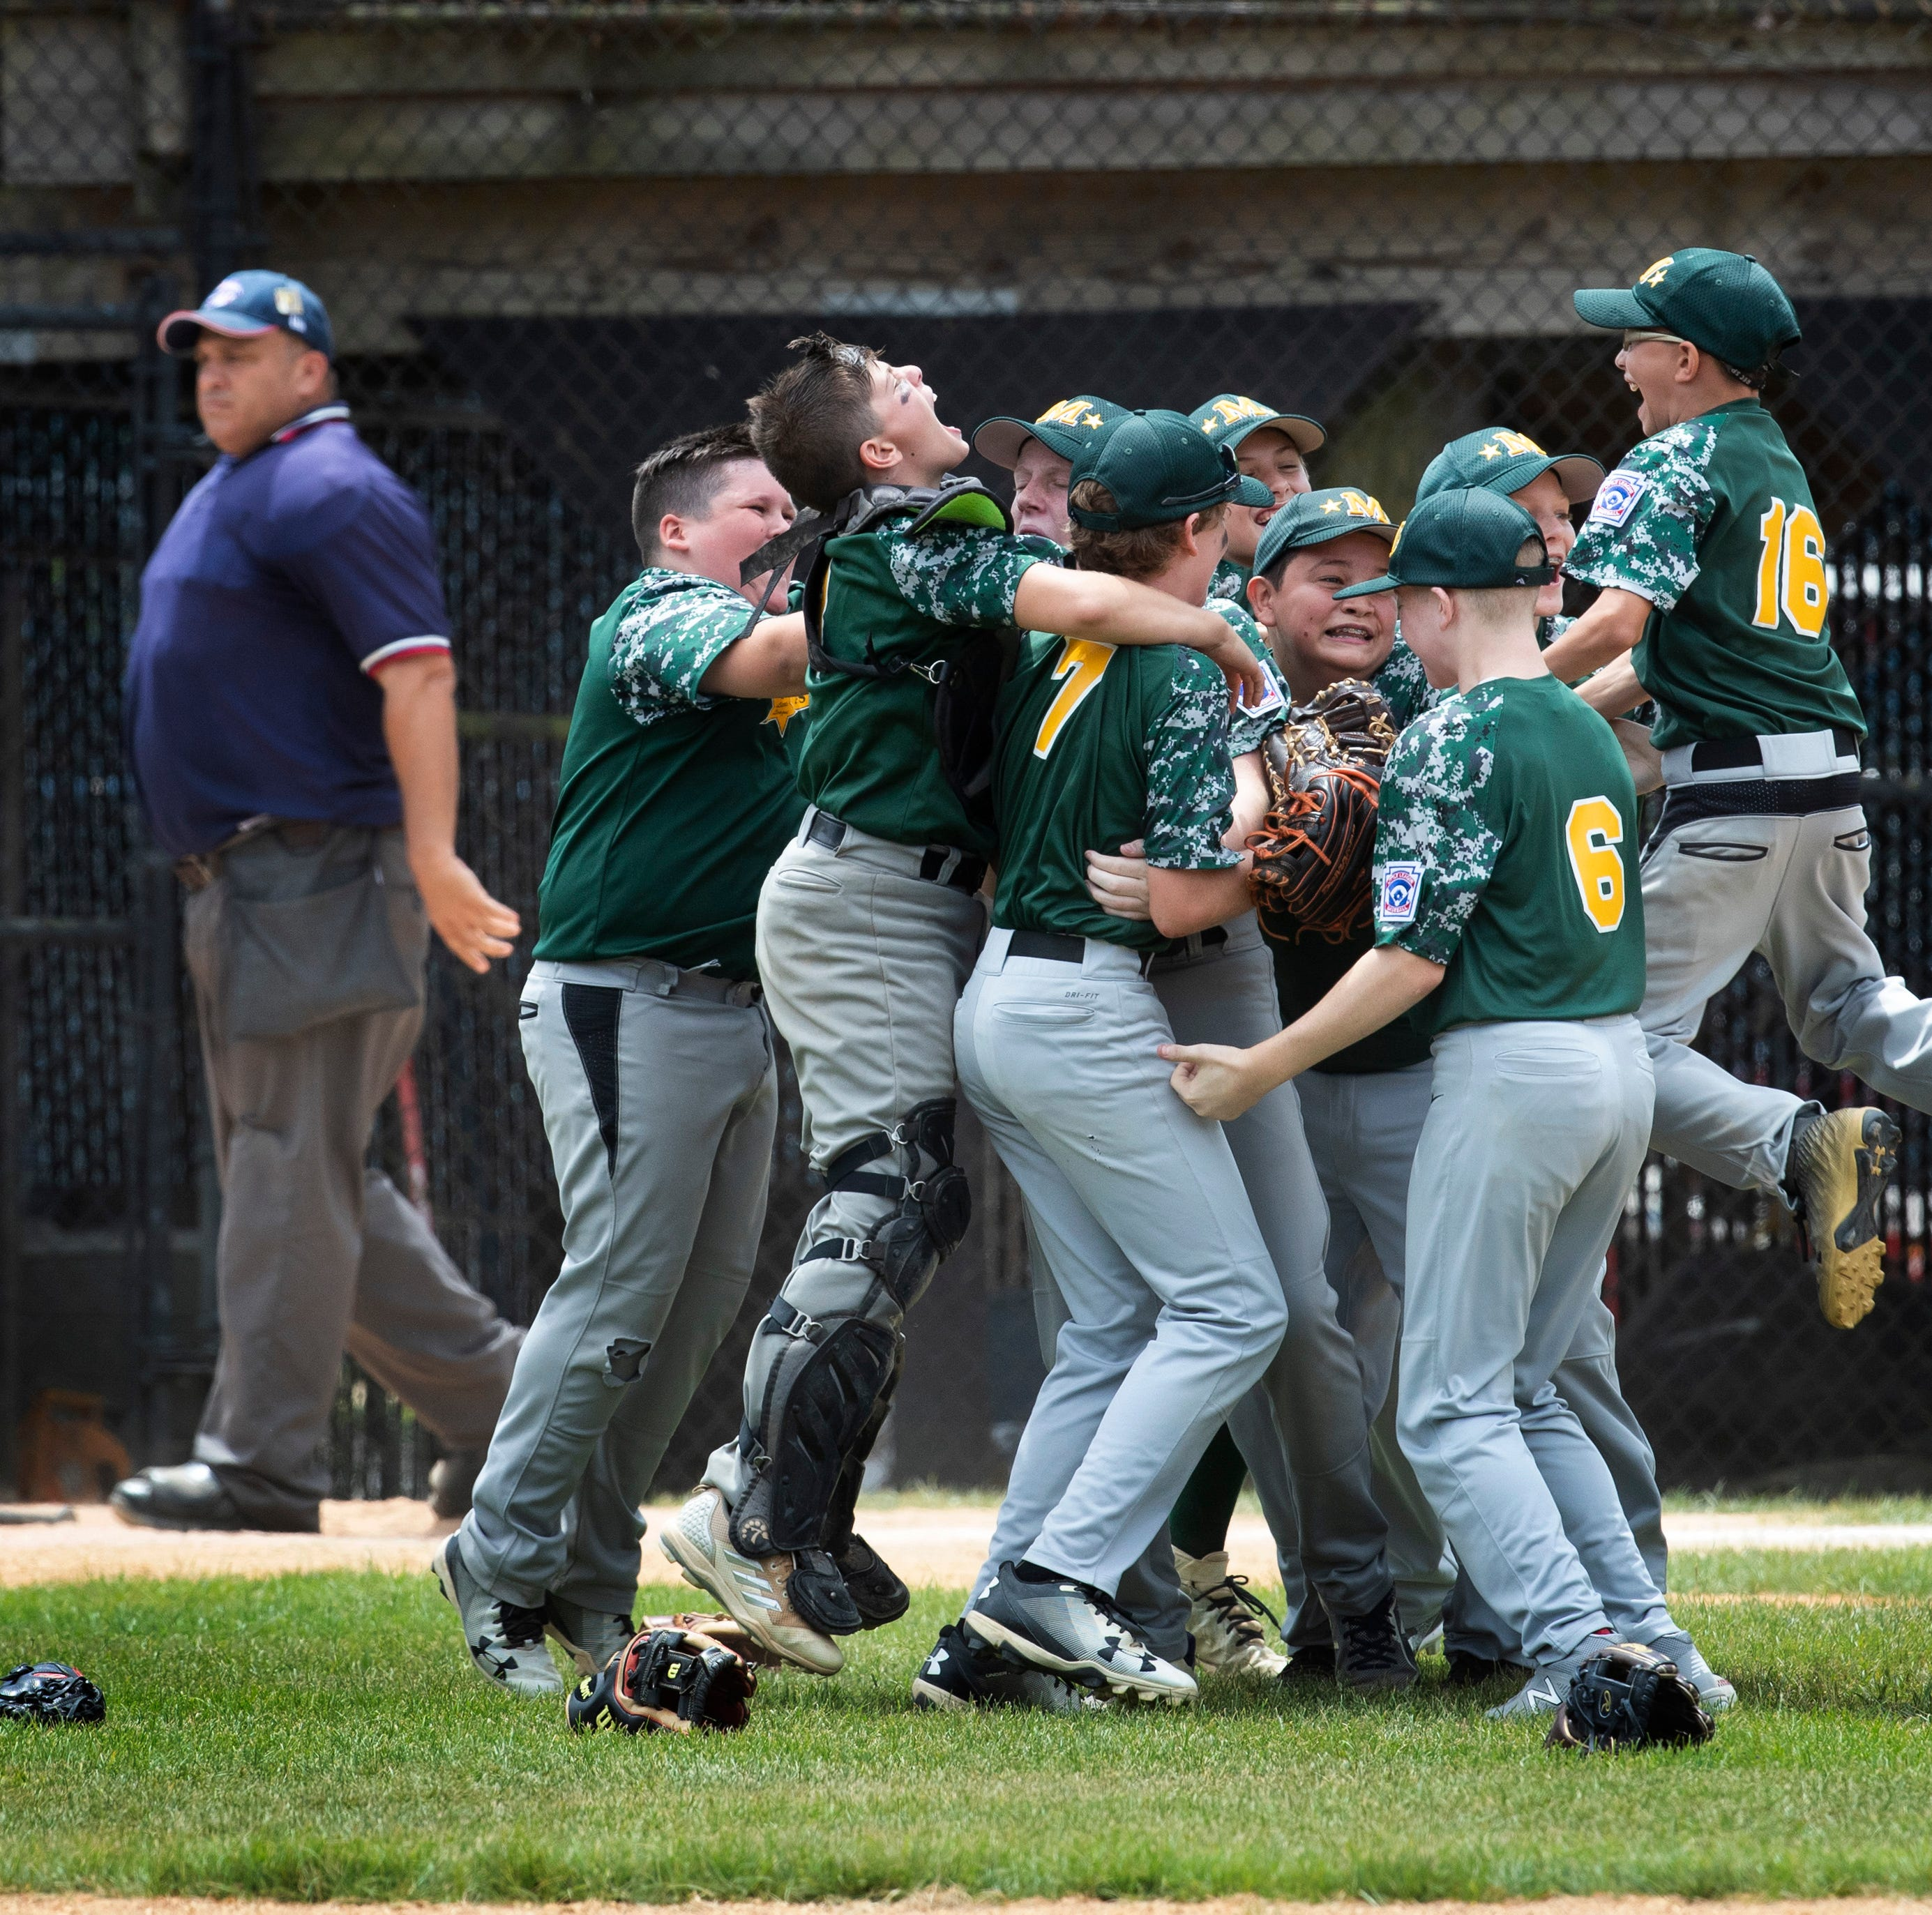 Little League: Middletown wins Section 3, heads to state tournament next